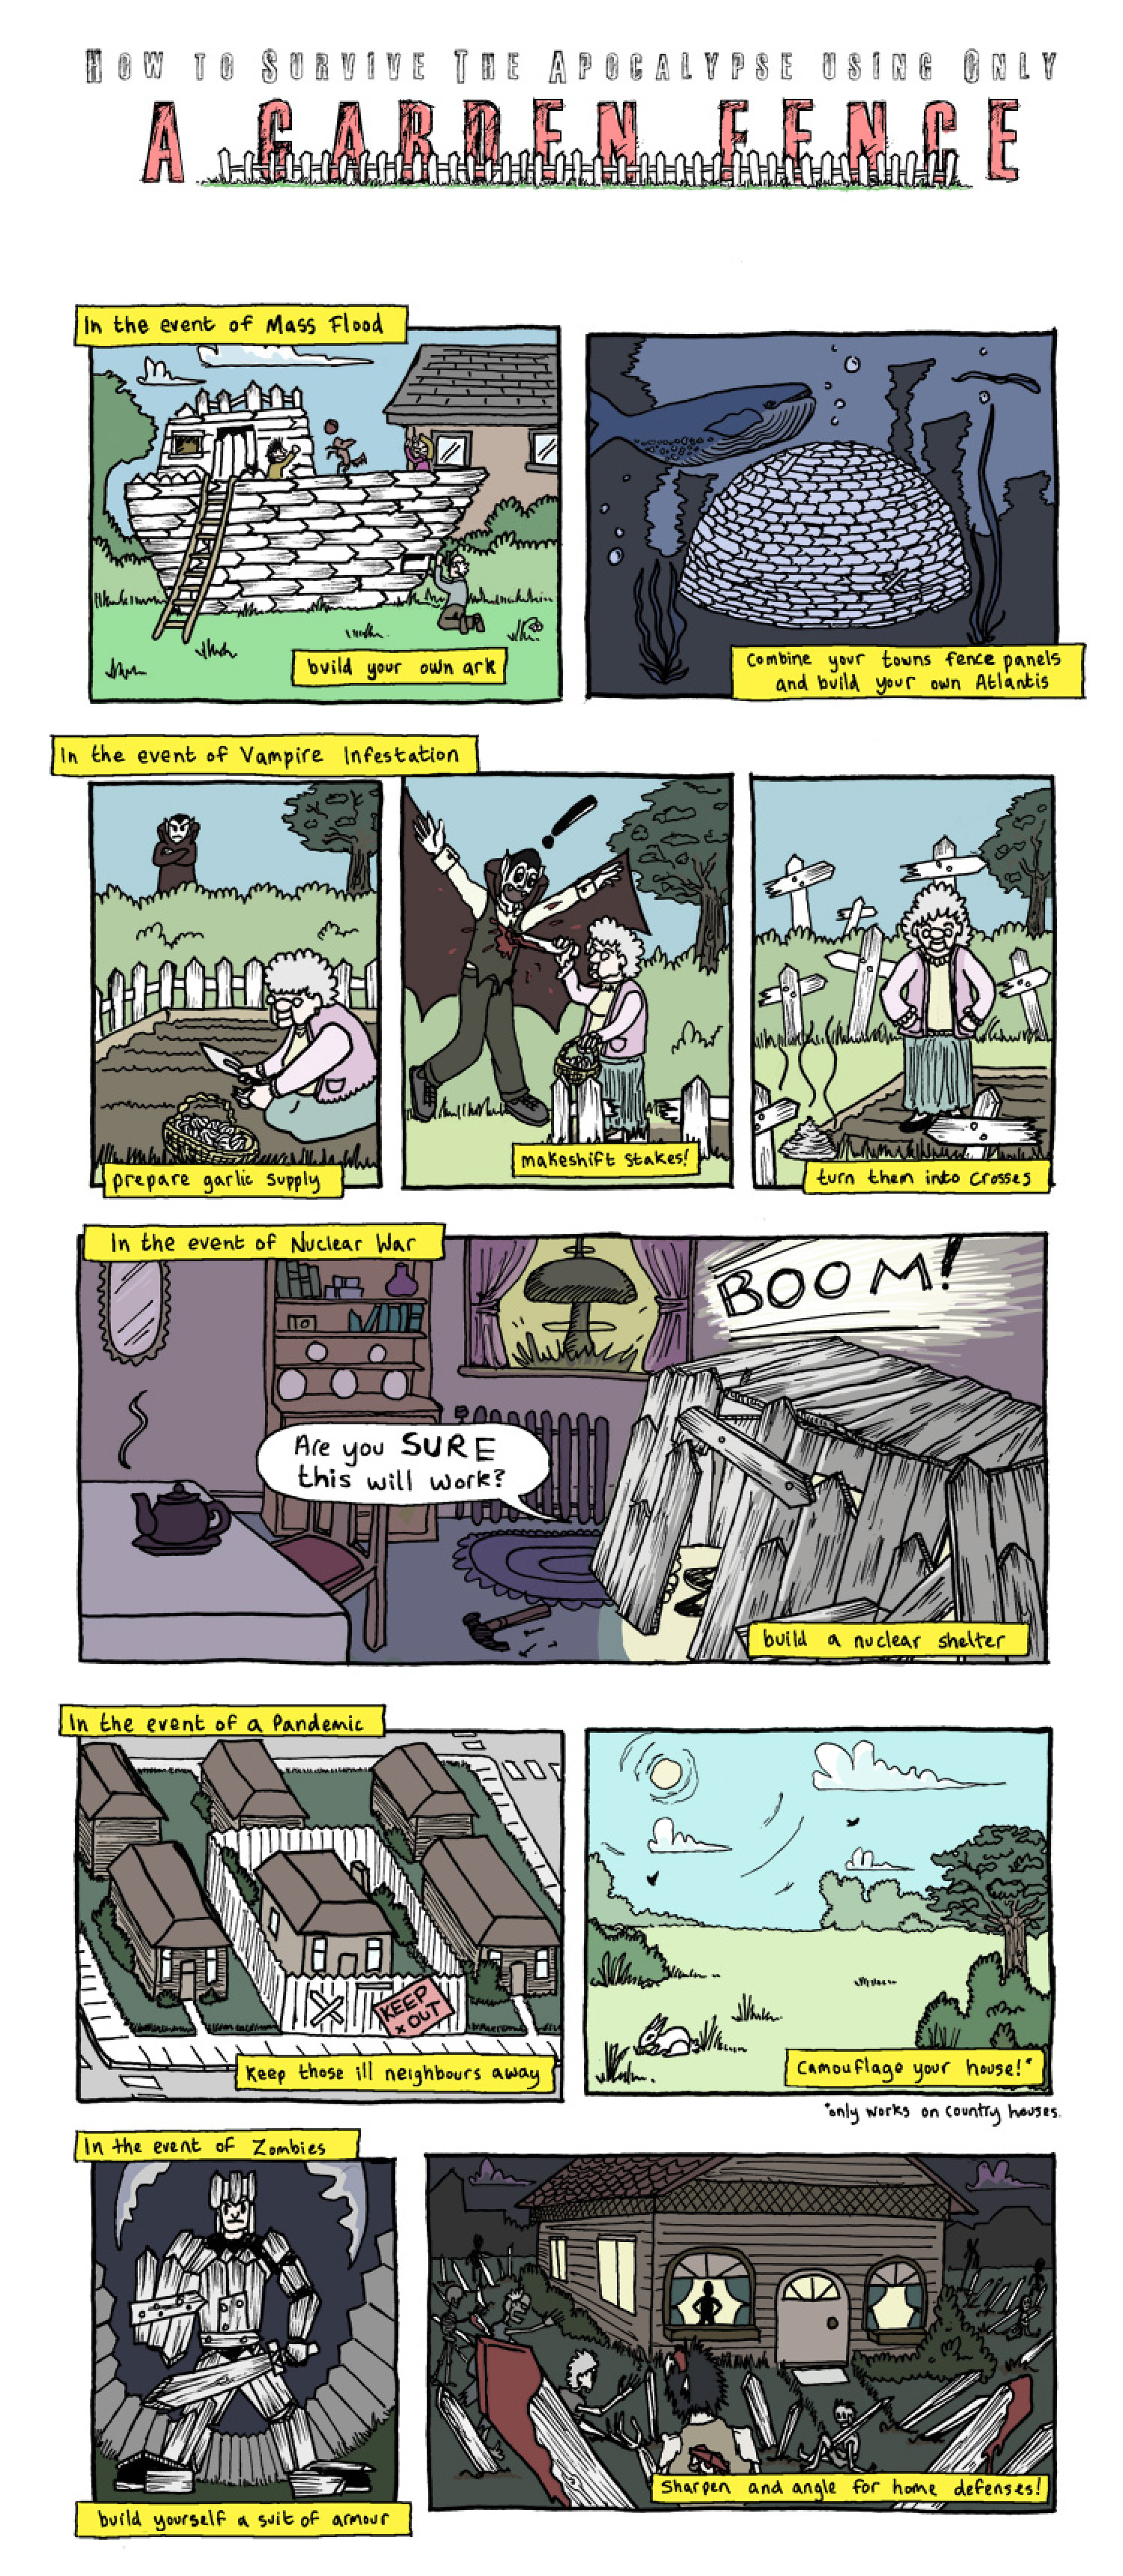 How to survive the apocalypse using only a garden fence Infographic